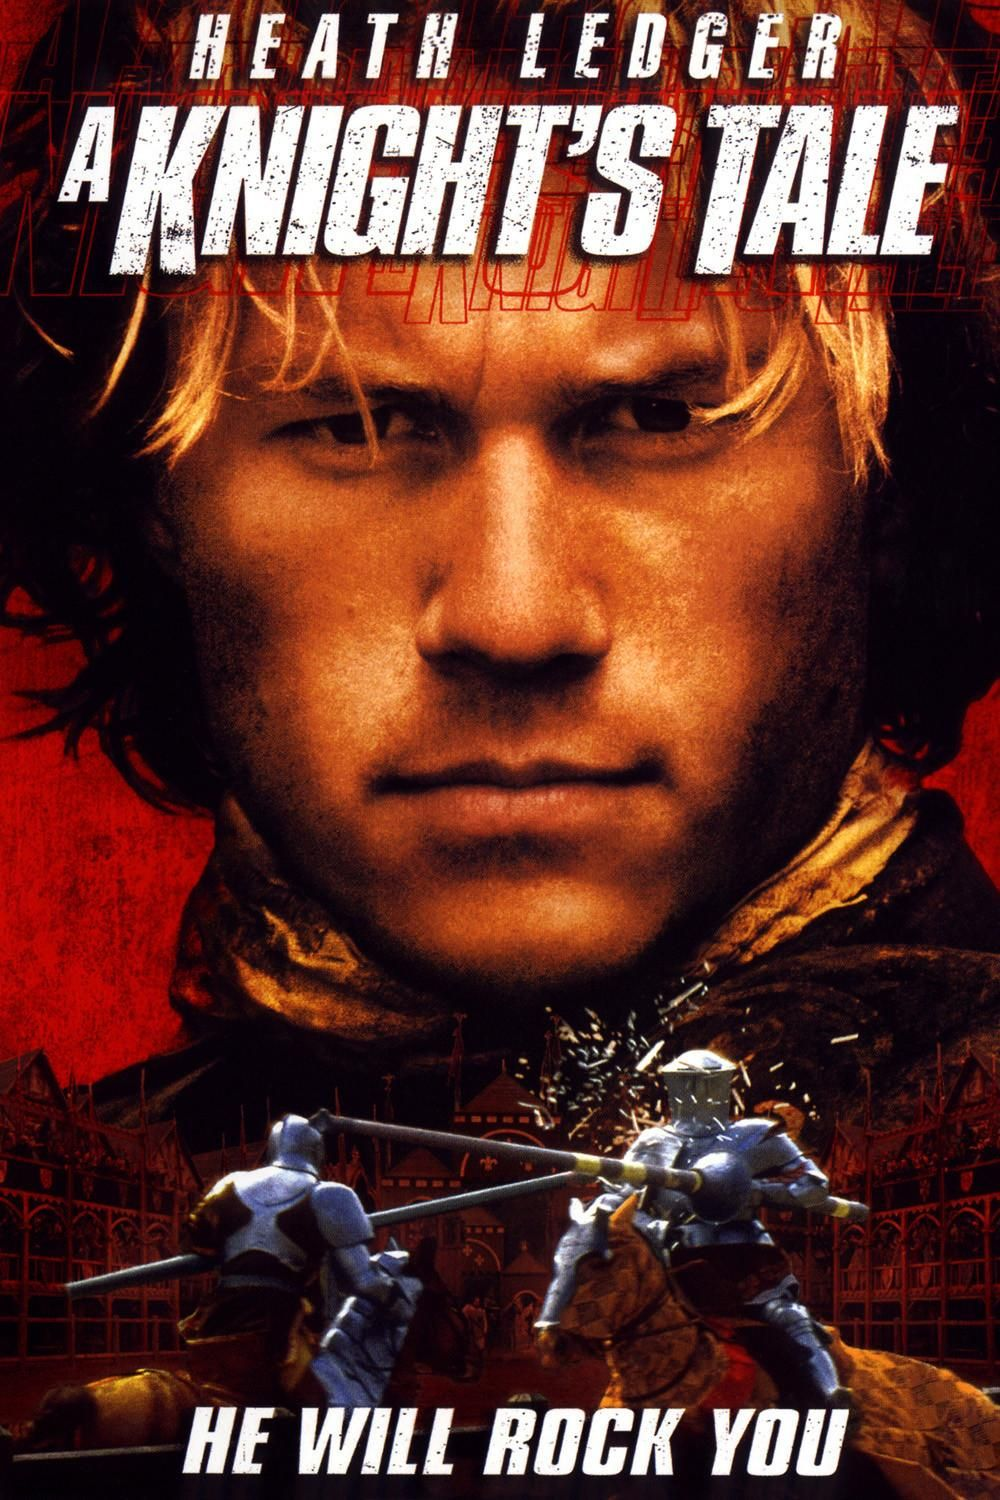 .'he didn't make the rules. He was born to break them'.  | a knight's tale